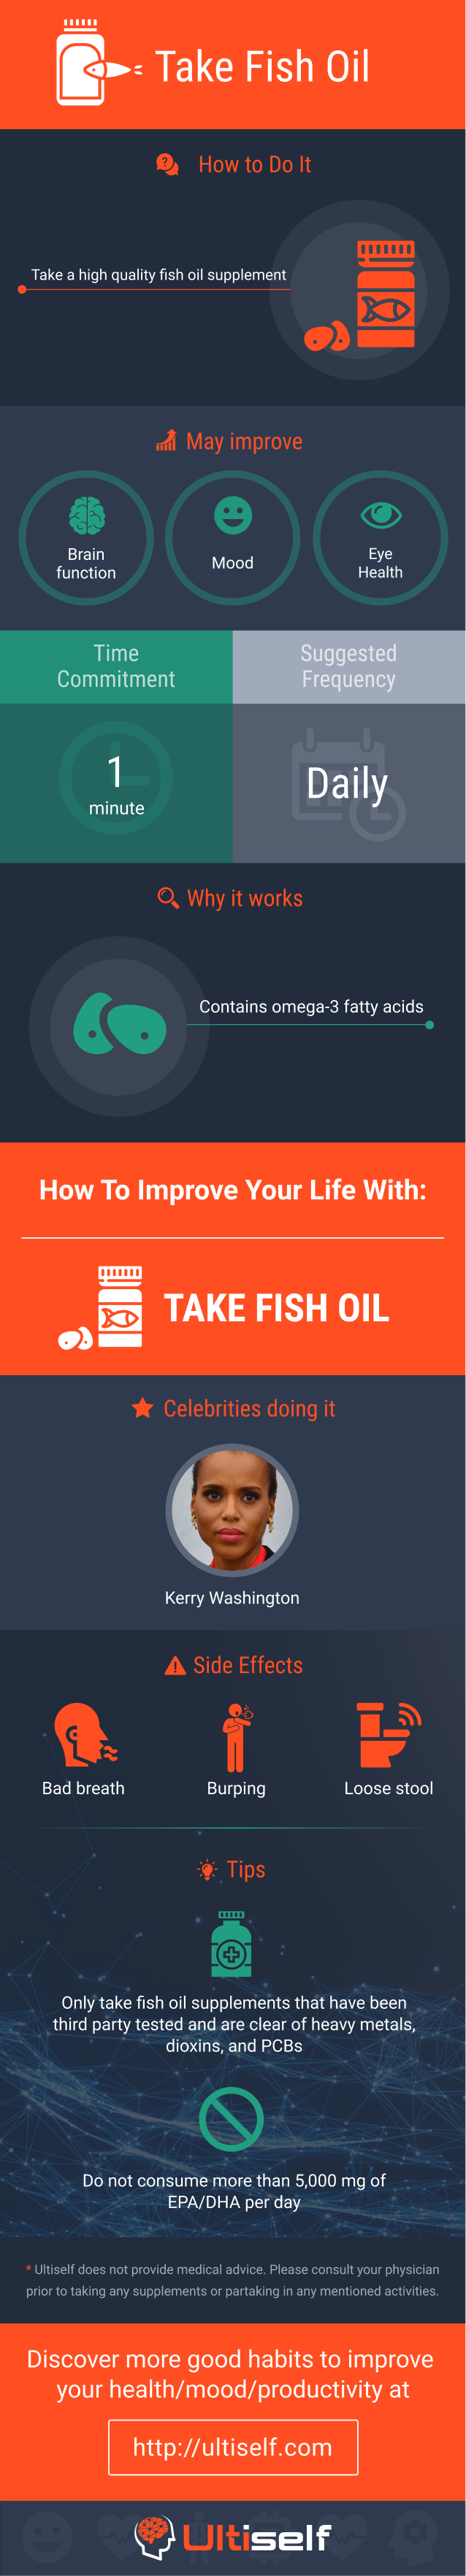 Take Fish Oil infographic